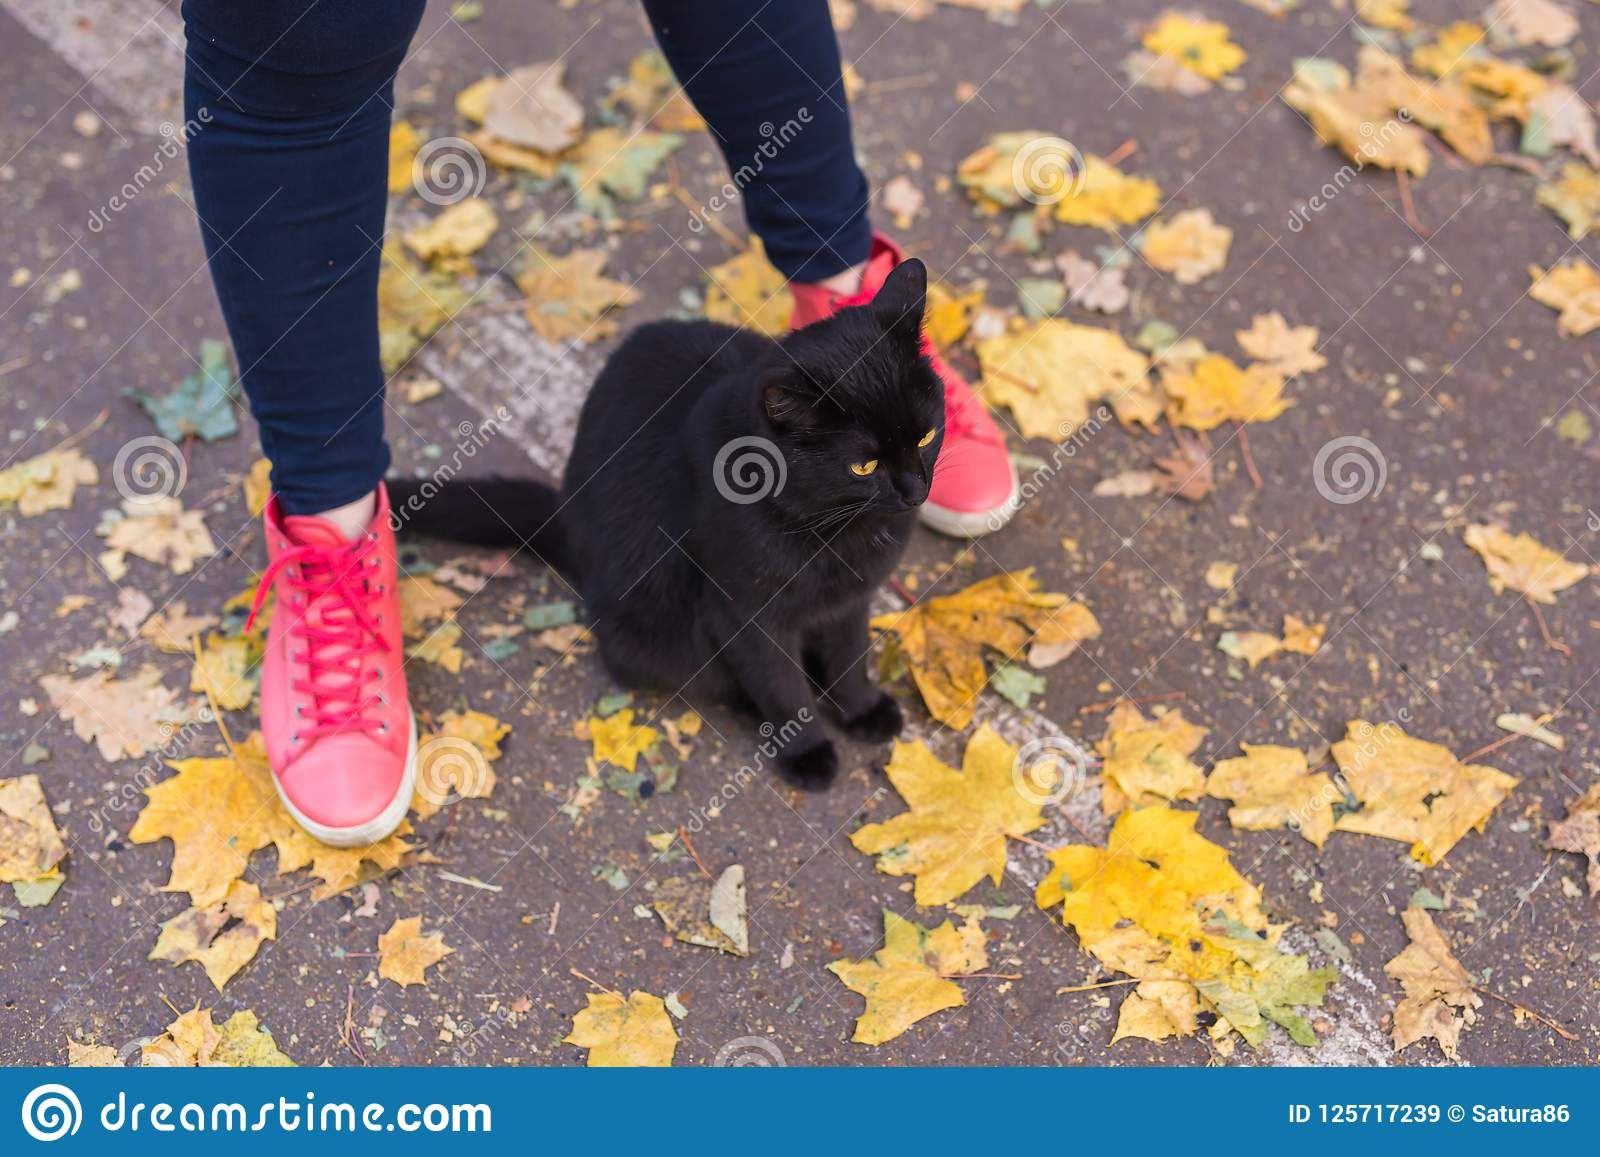 Female Feet In Pink Sneakers And Black Cat In Autumn Nature Stock ... 7b78d18ea